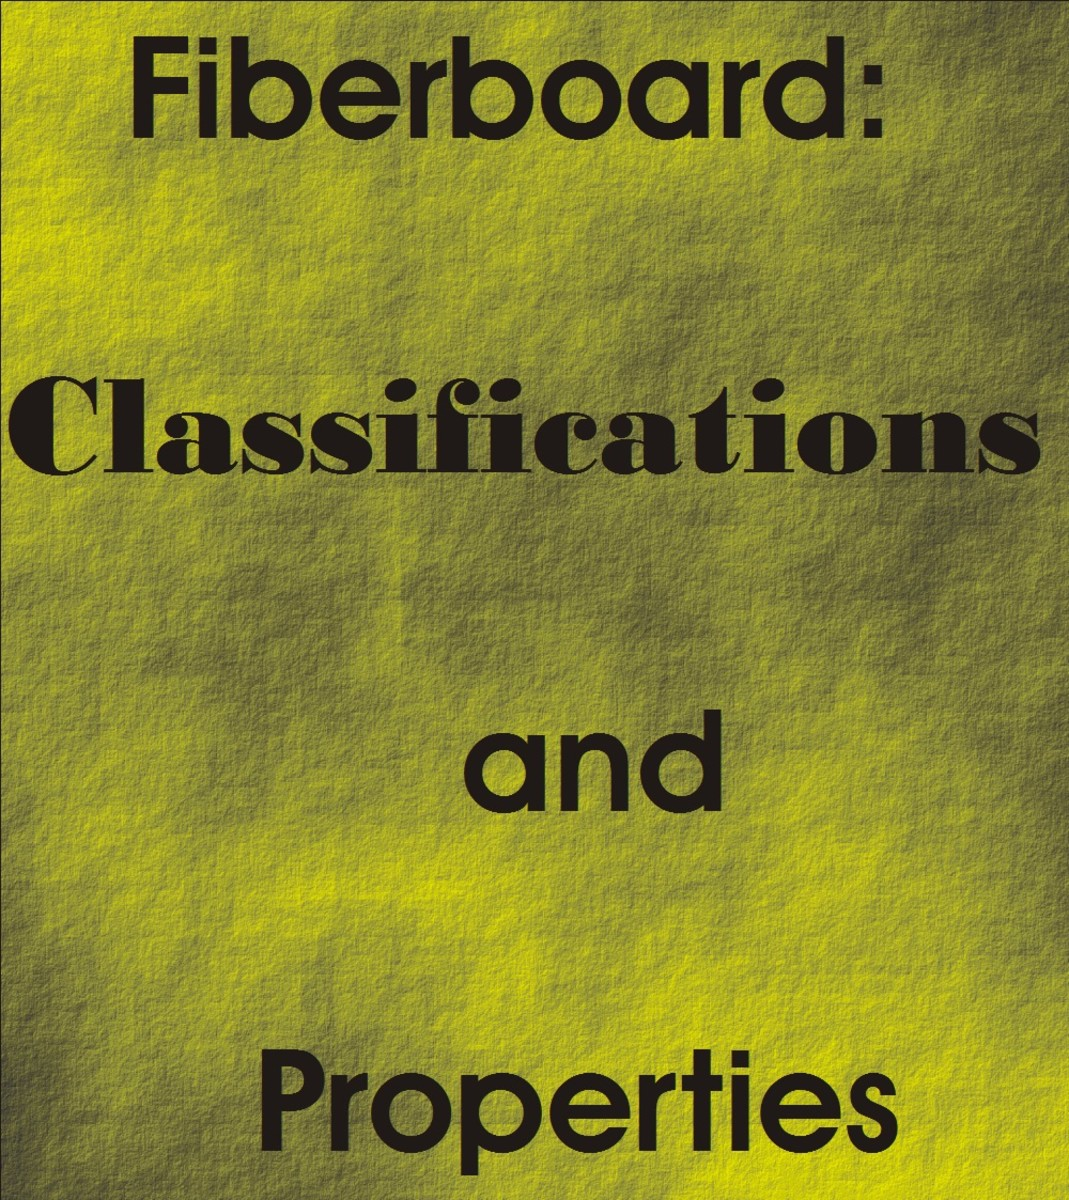 Fiberboard is an important material in roofing and other building applications.